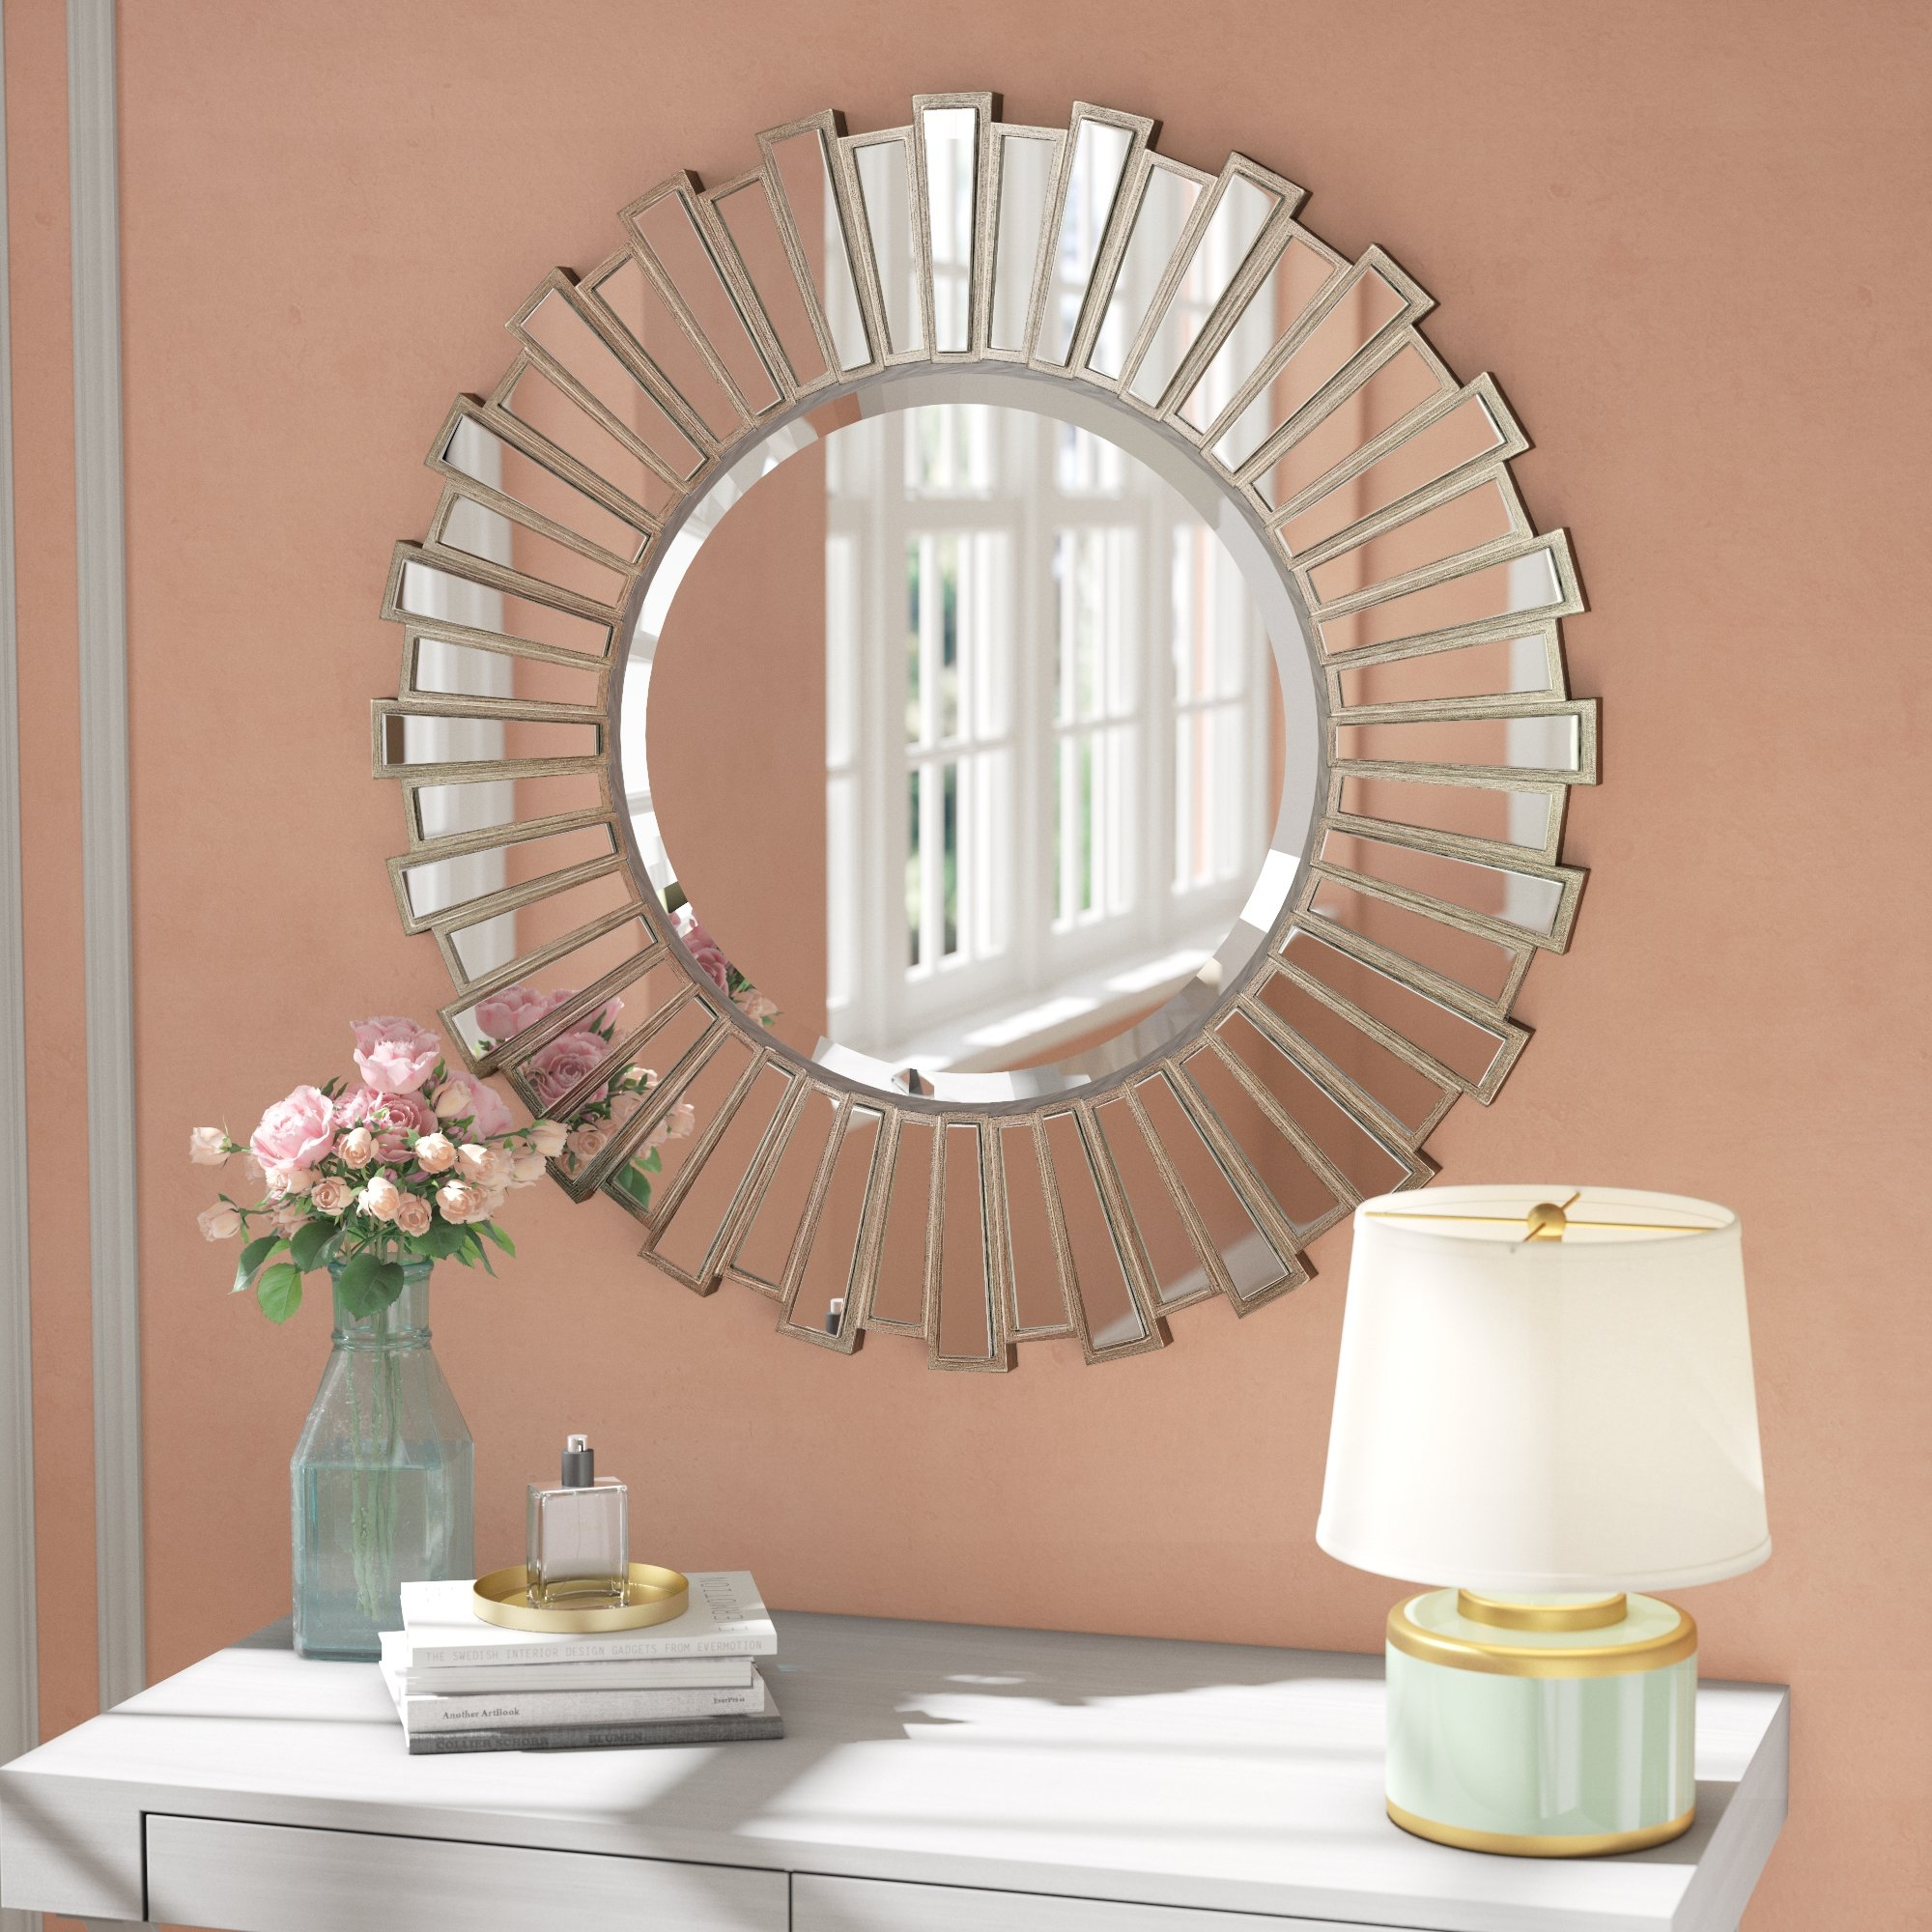 Wegman Accent Wall Mirror | Wayfair.ca in Swagger Accent Wall Mirrors (Image 27 of 30)